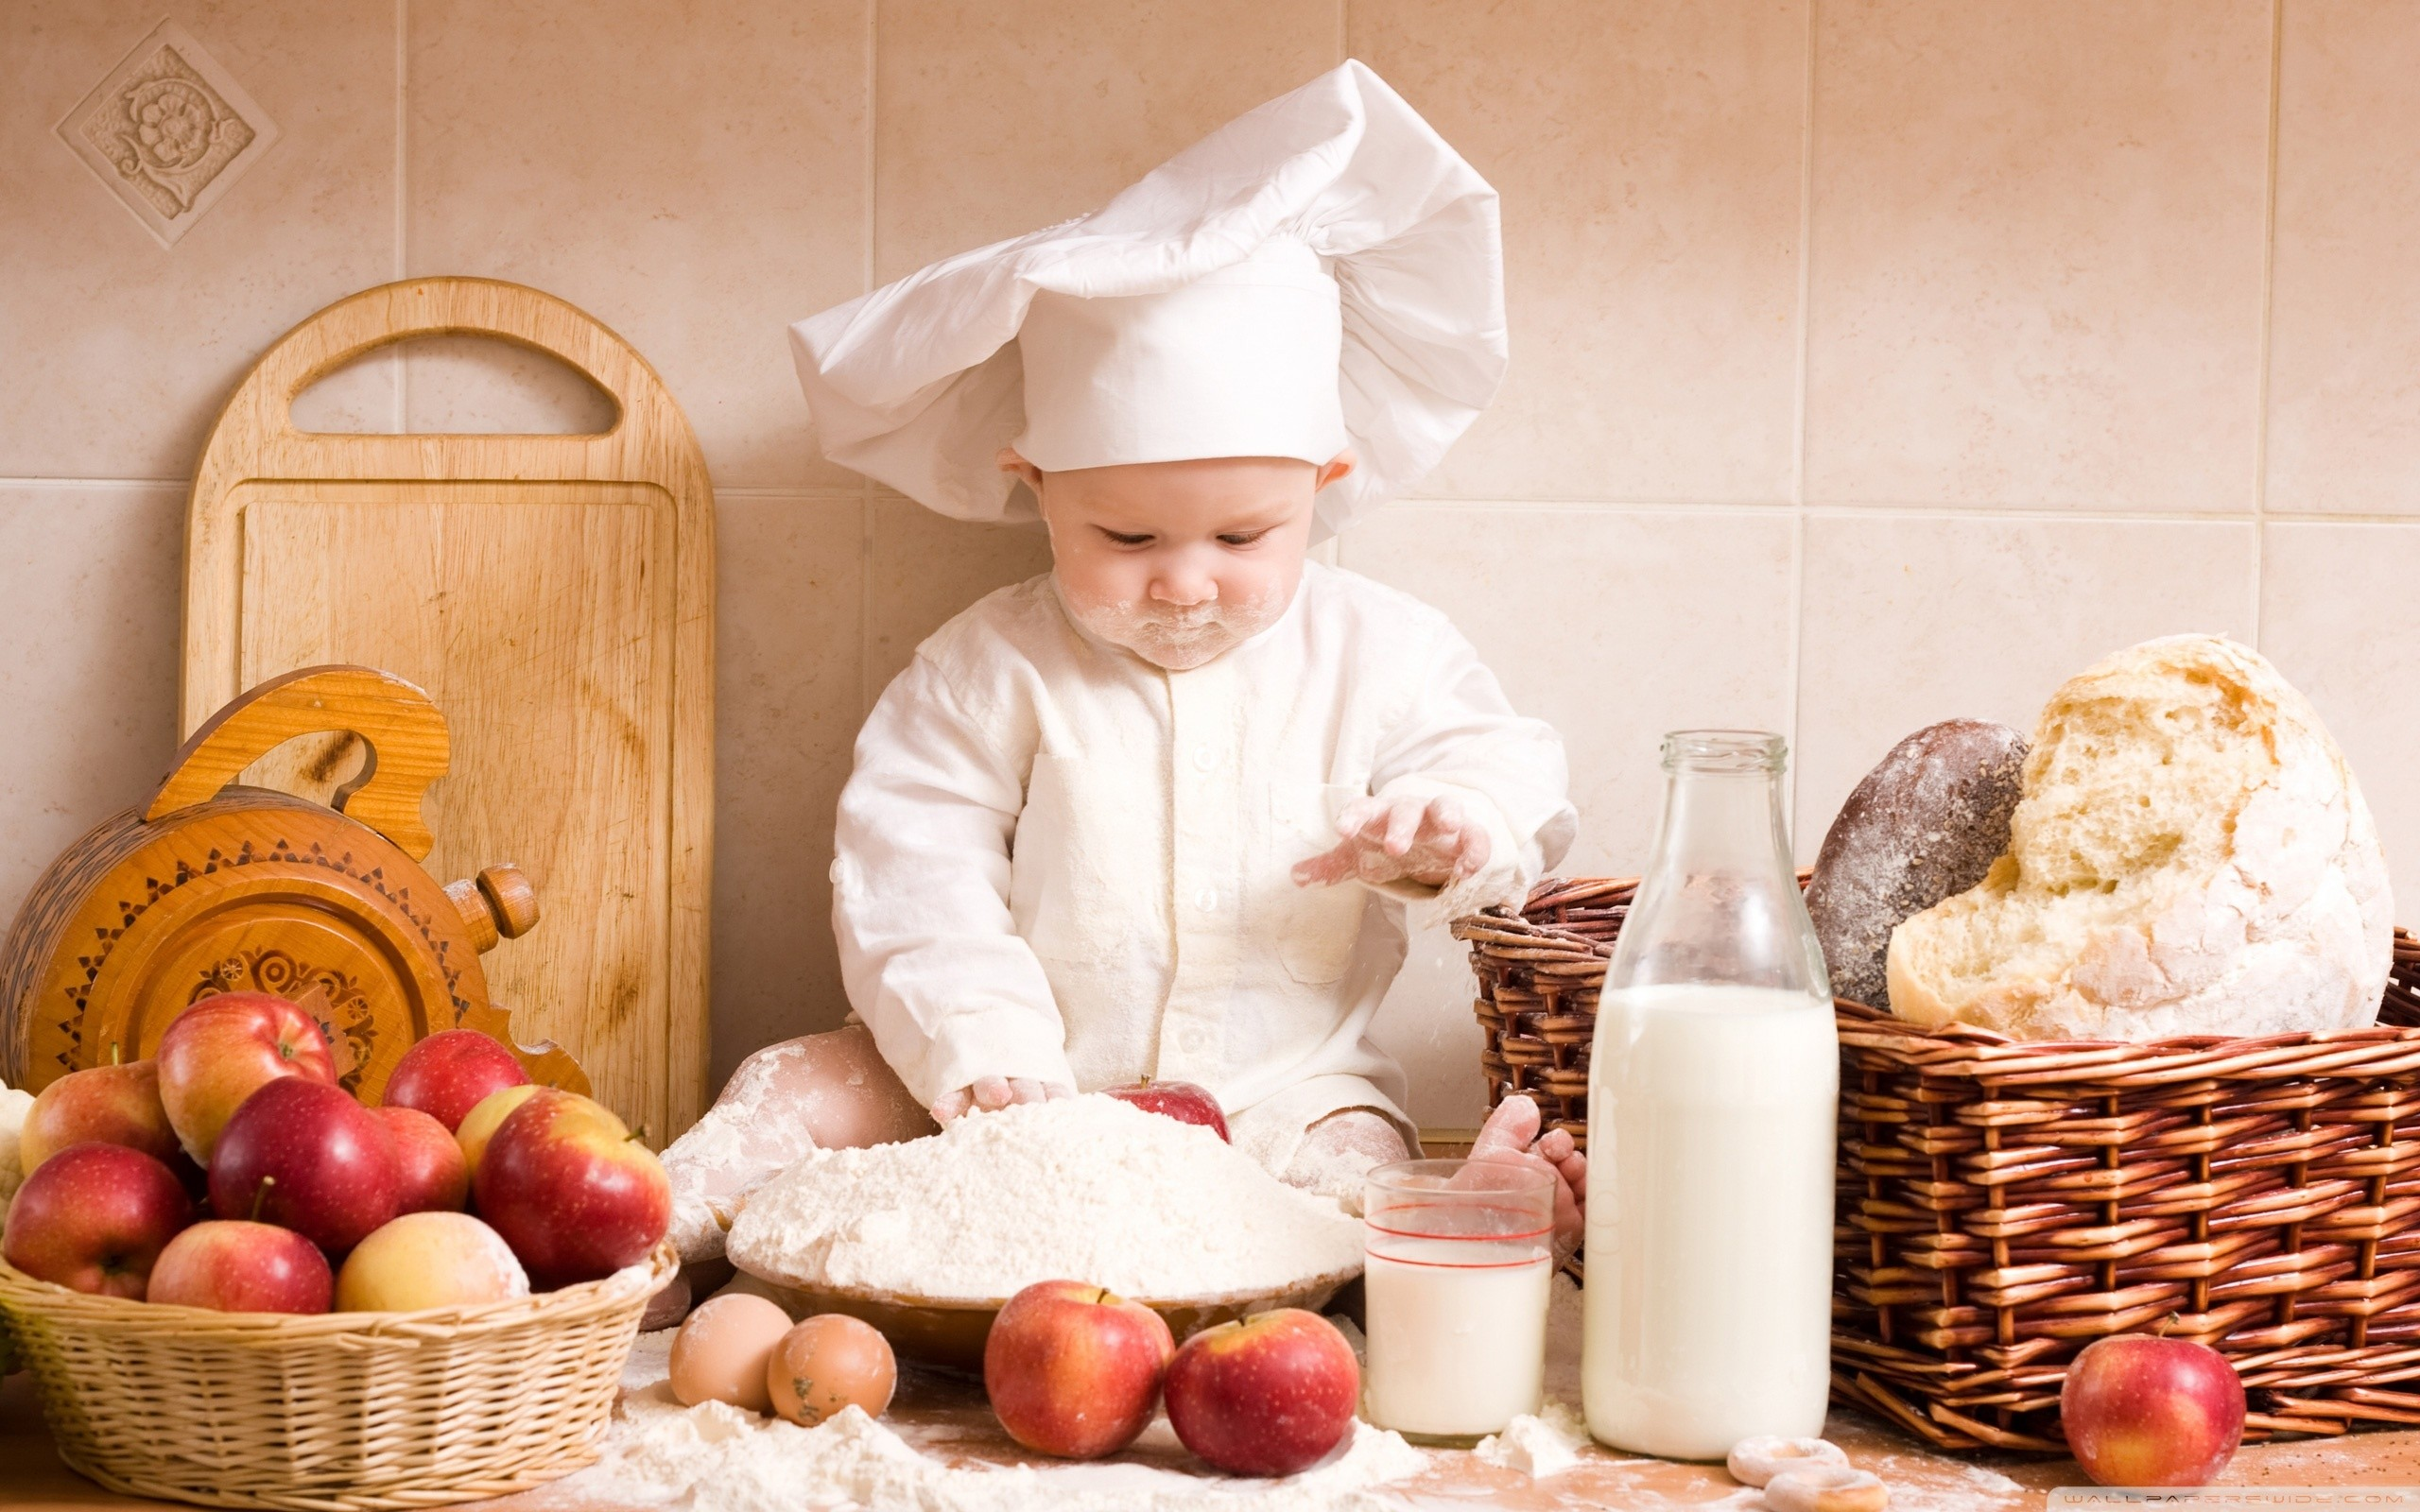 Baby Chef - Baby Chef PNG